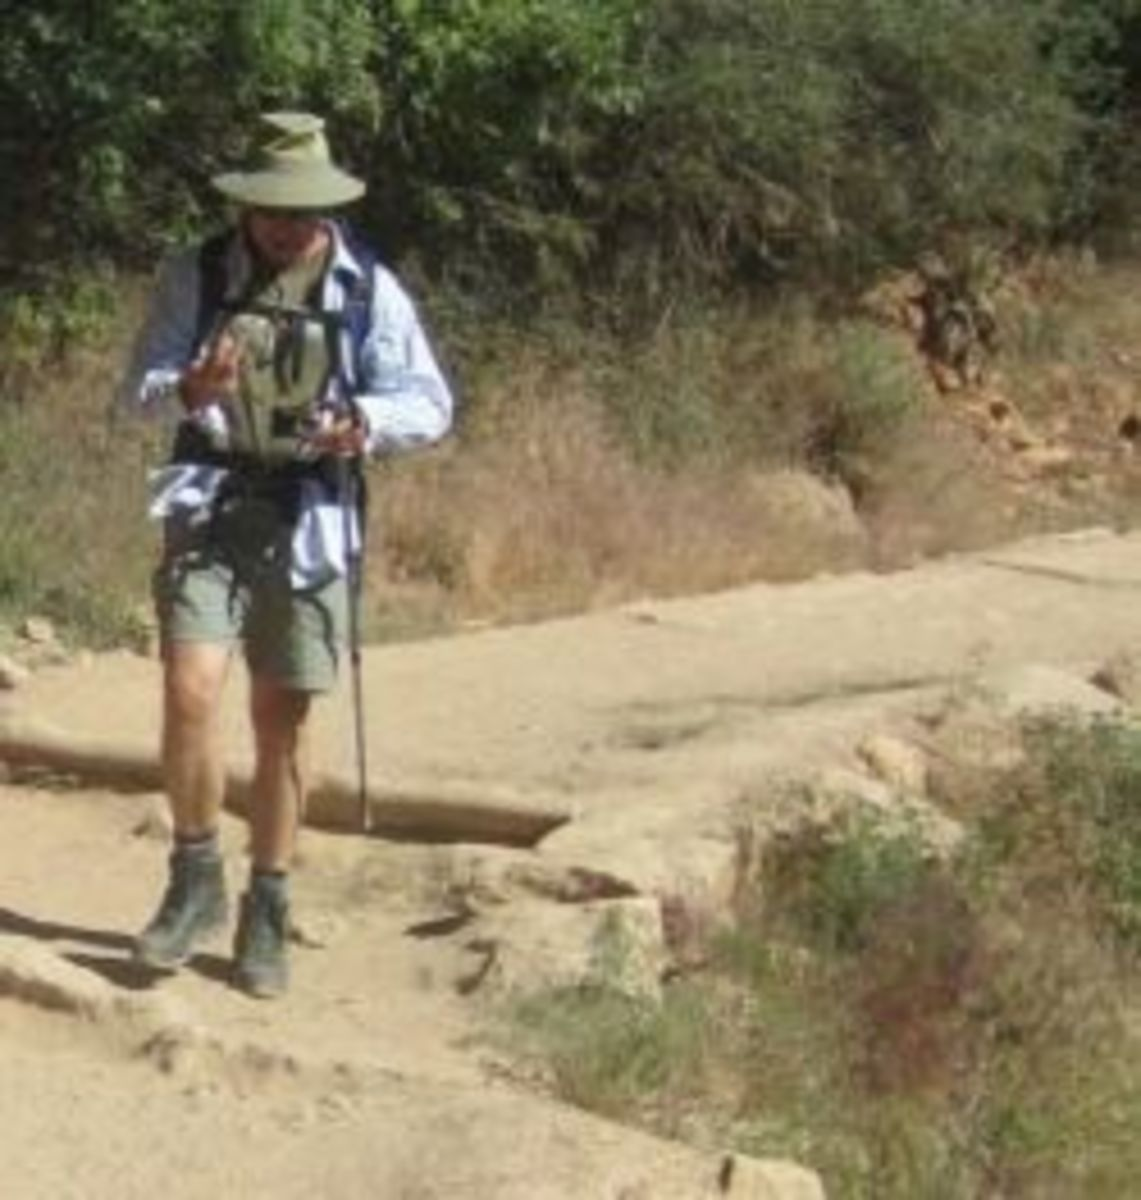 A hiker on the Bright Angel Trail